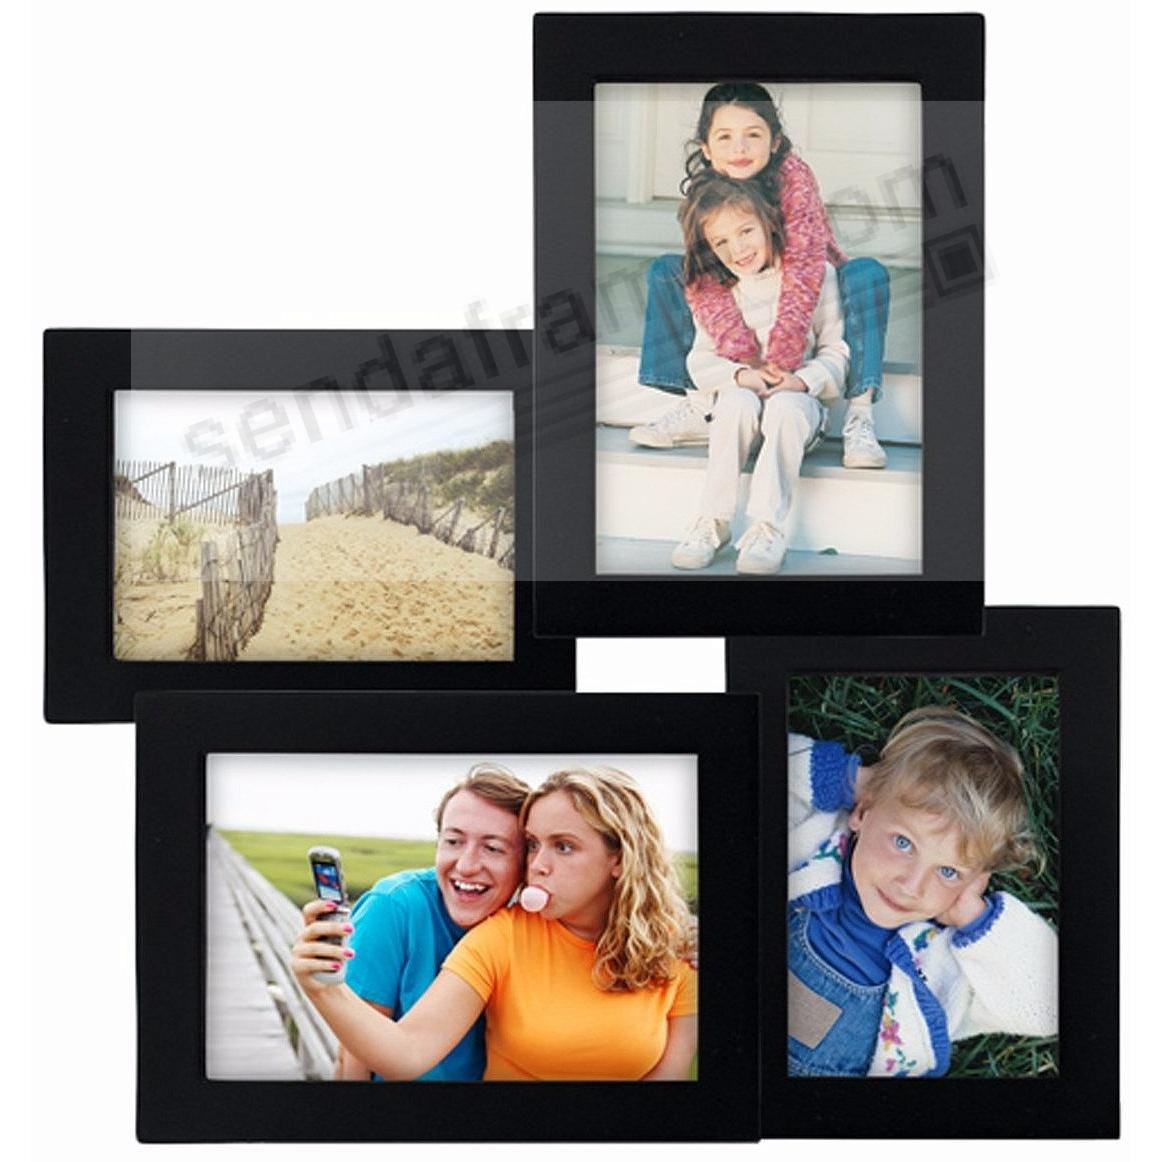 Wunderbar 5x7 Picture Collage Frames Galerie